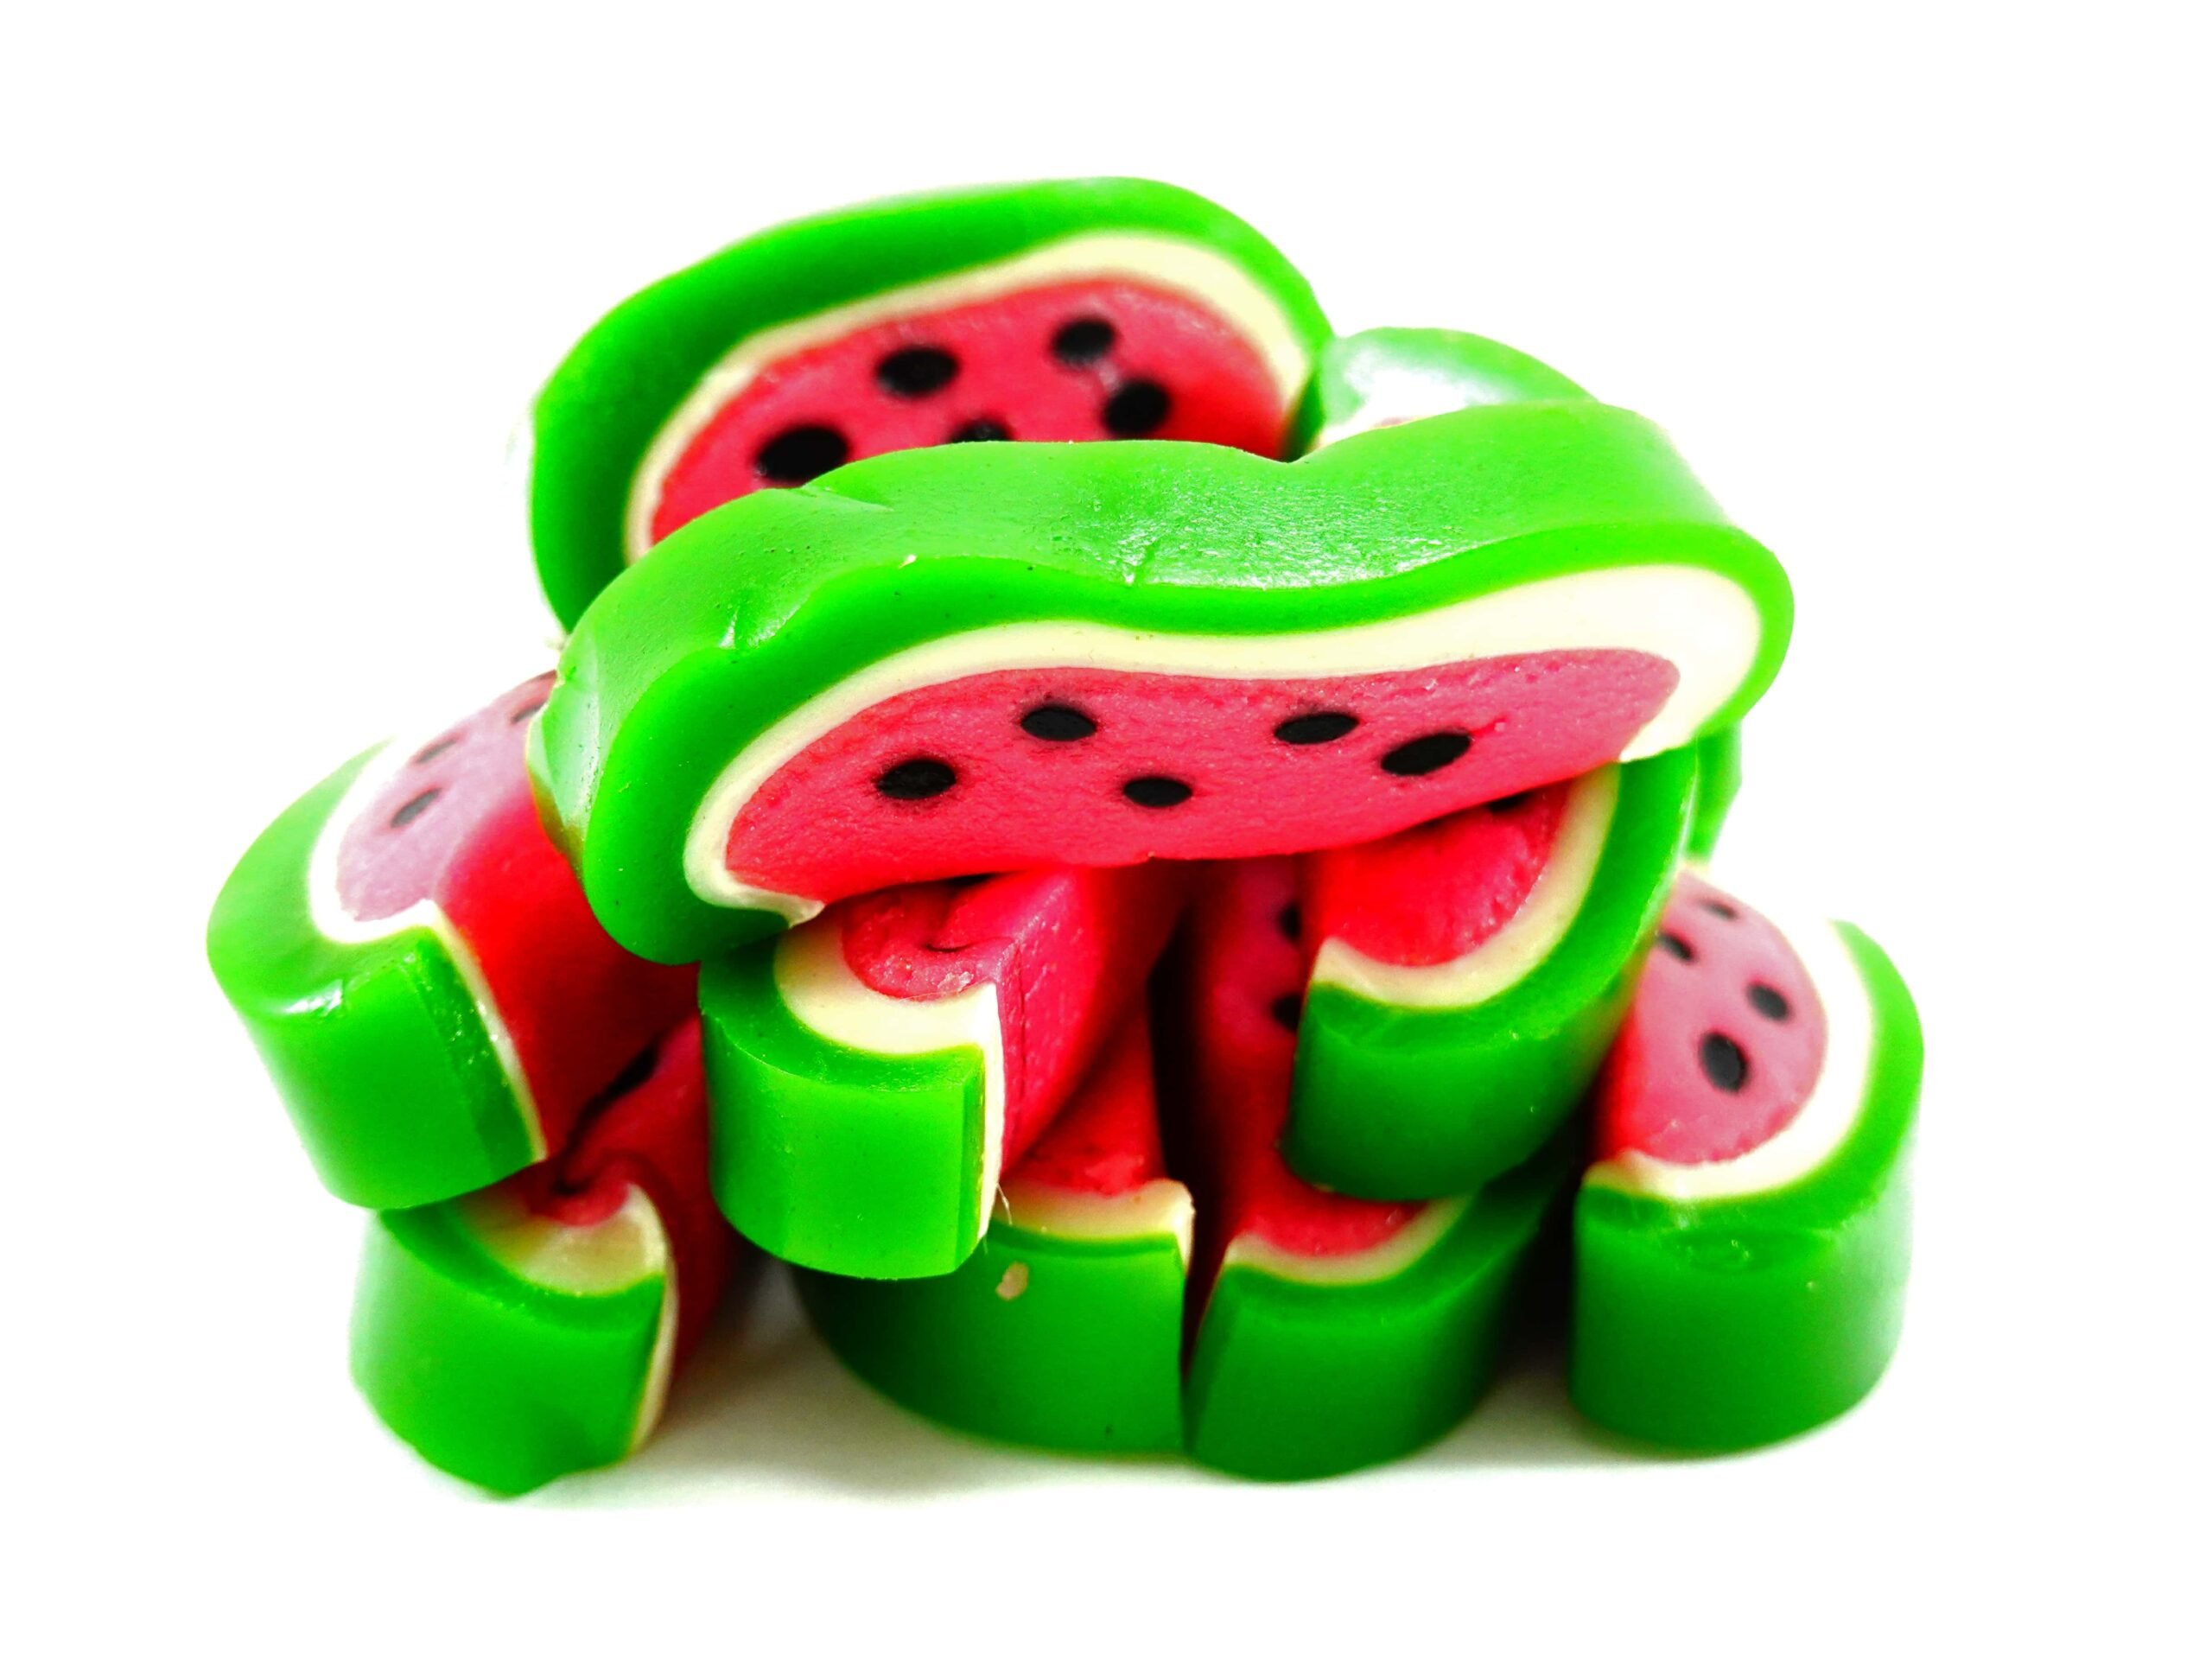 Watermelon Jelly sweets